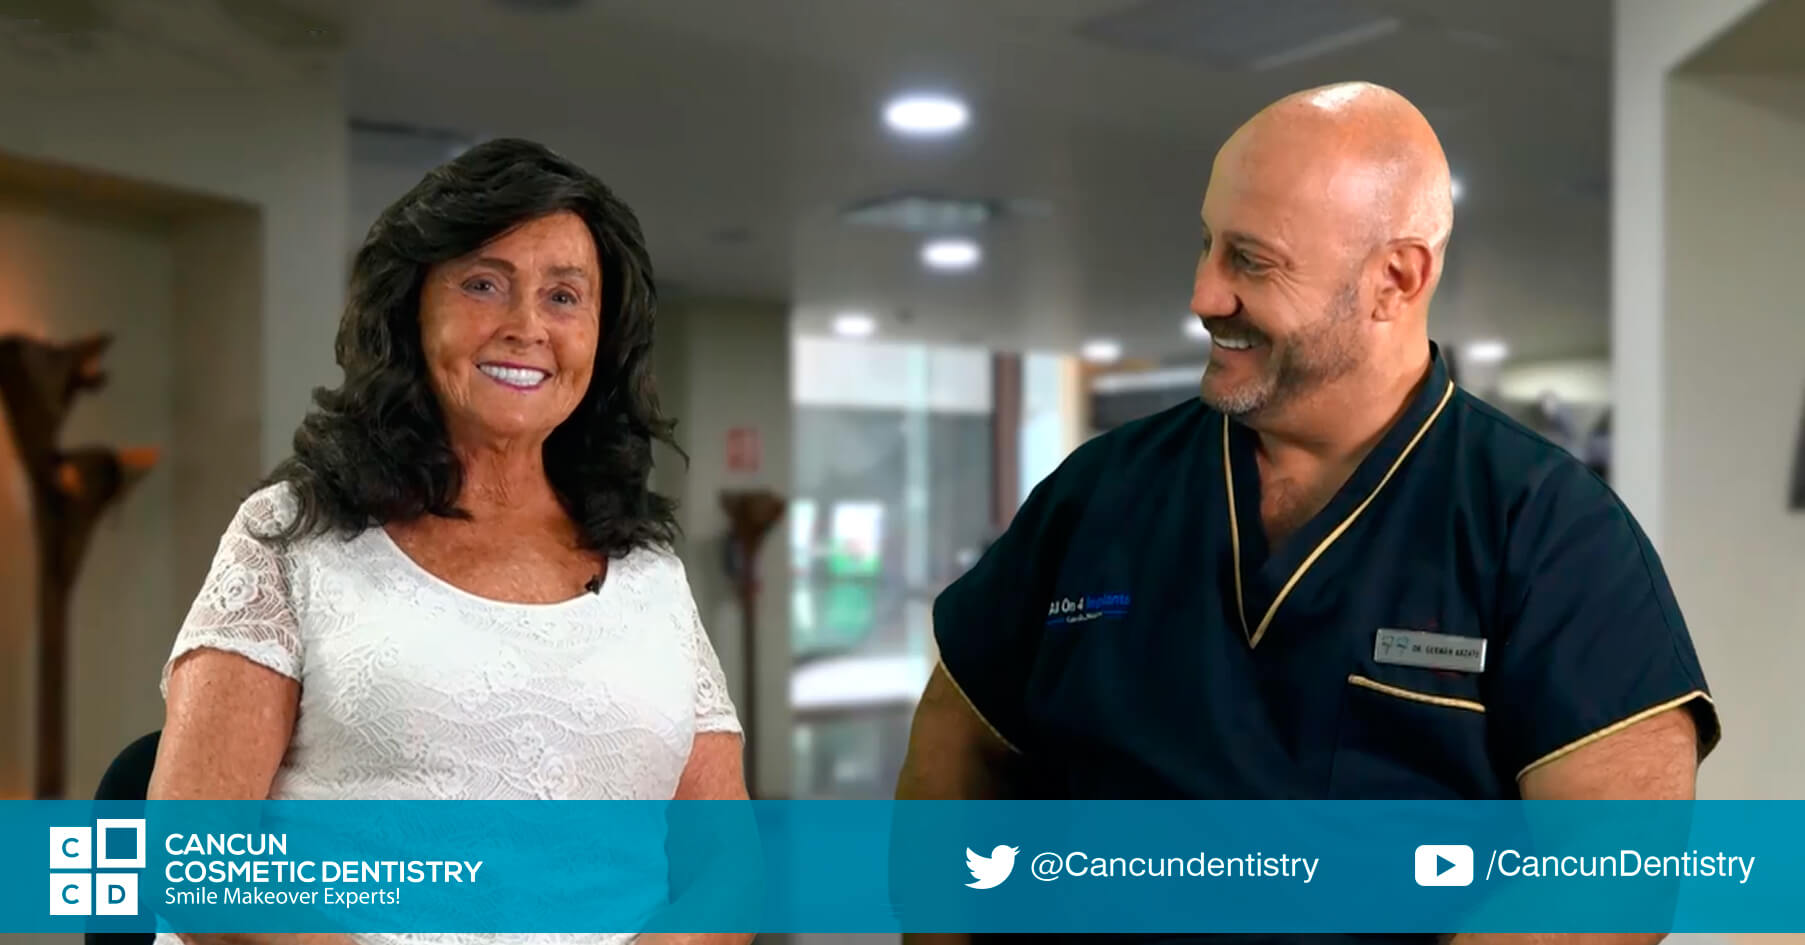 She feels better about herself – Cancun Cosmetic Dentistry Review